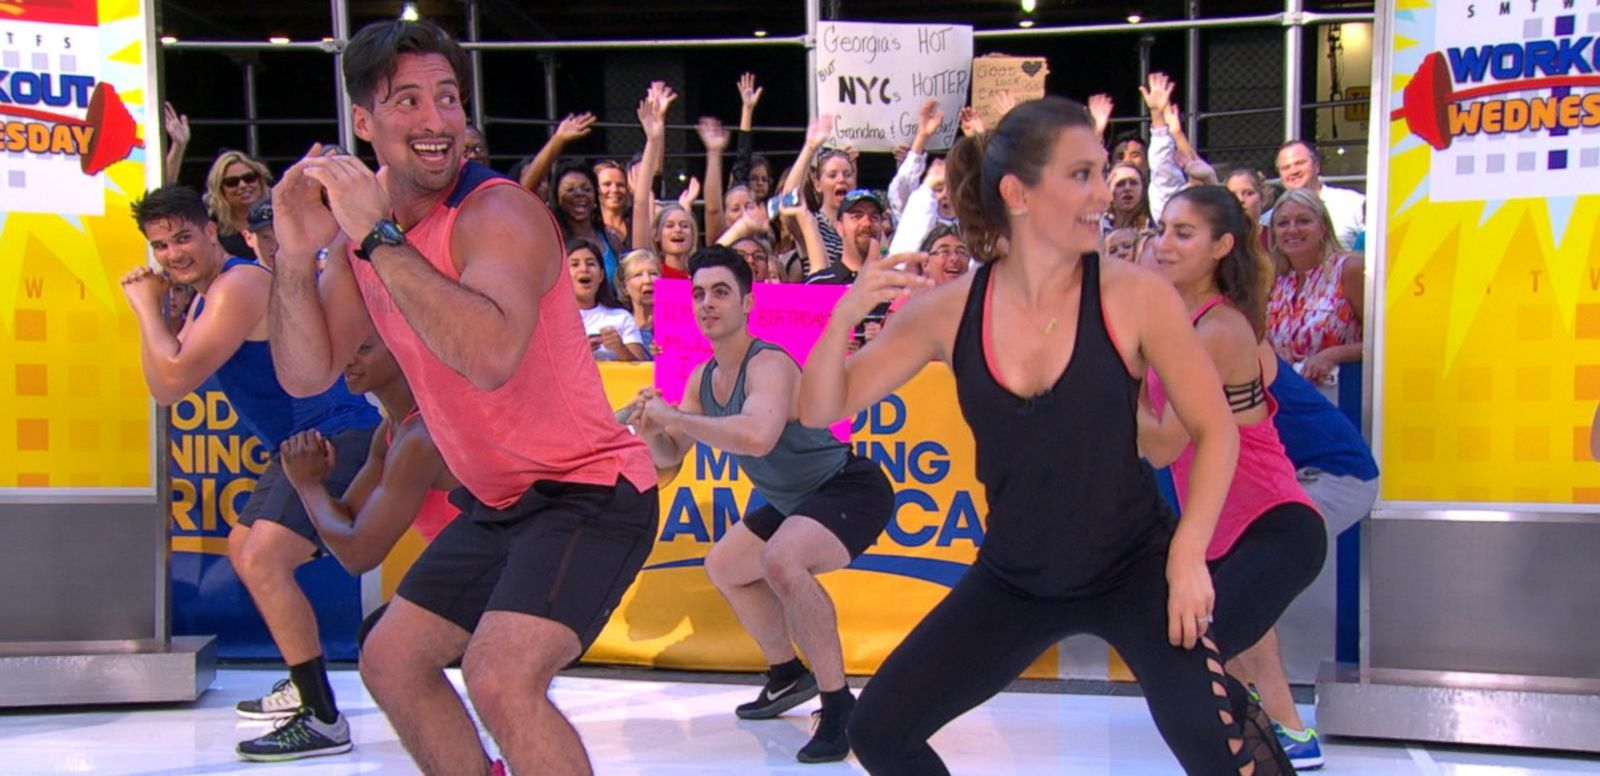 VIDEO: Workout Wednesday With Trainer Layla Luciano